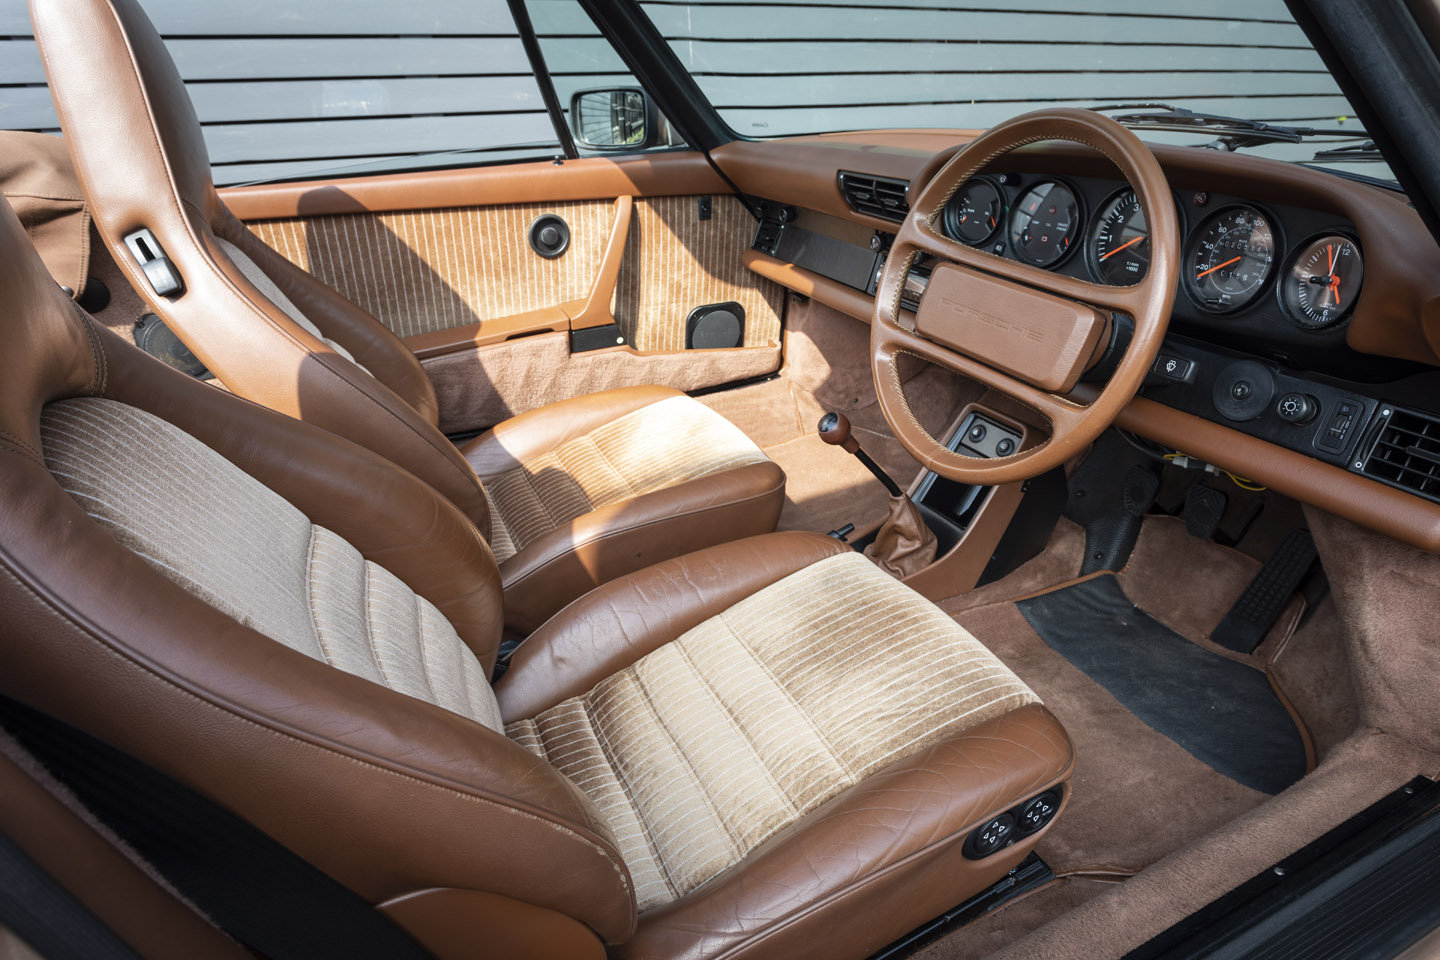 1987 Porsche 911 SSE Cabriolet (G50) Factory Hard Top SOLD (picture 4 of 6)